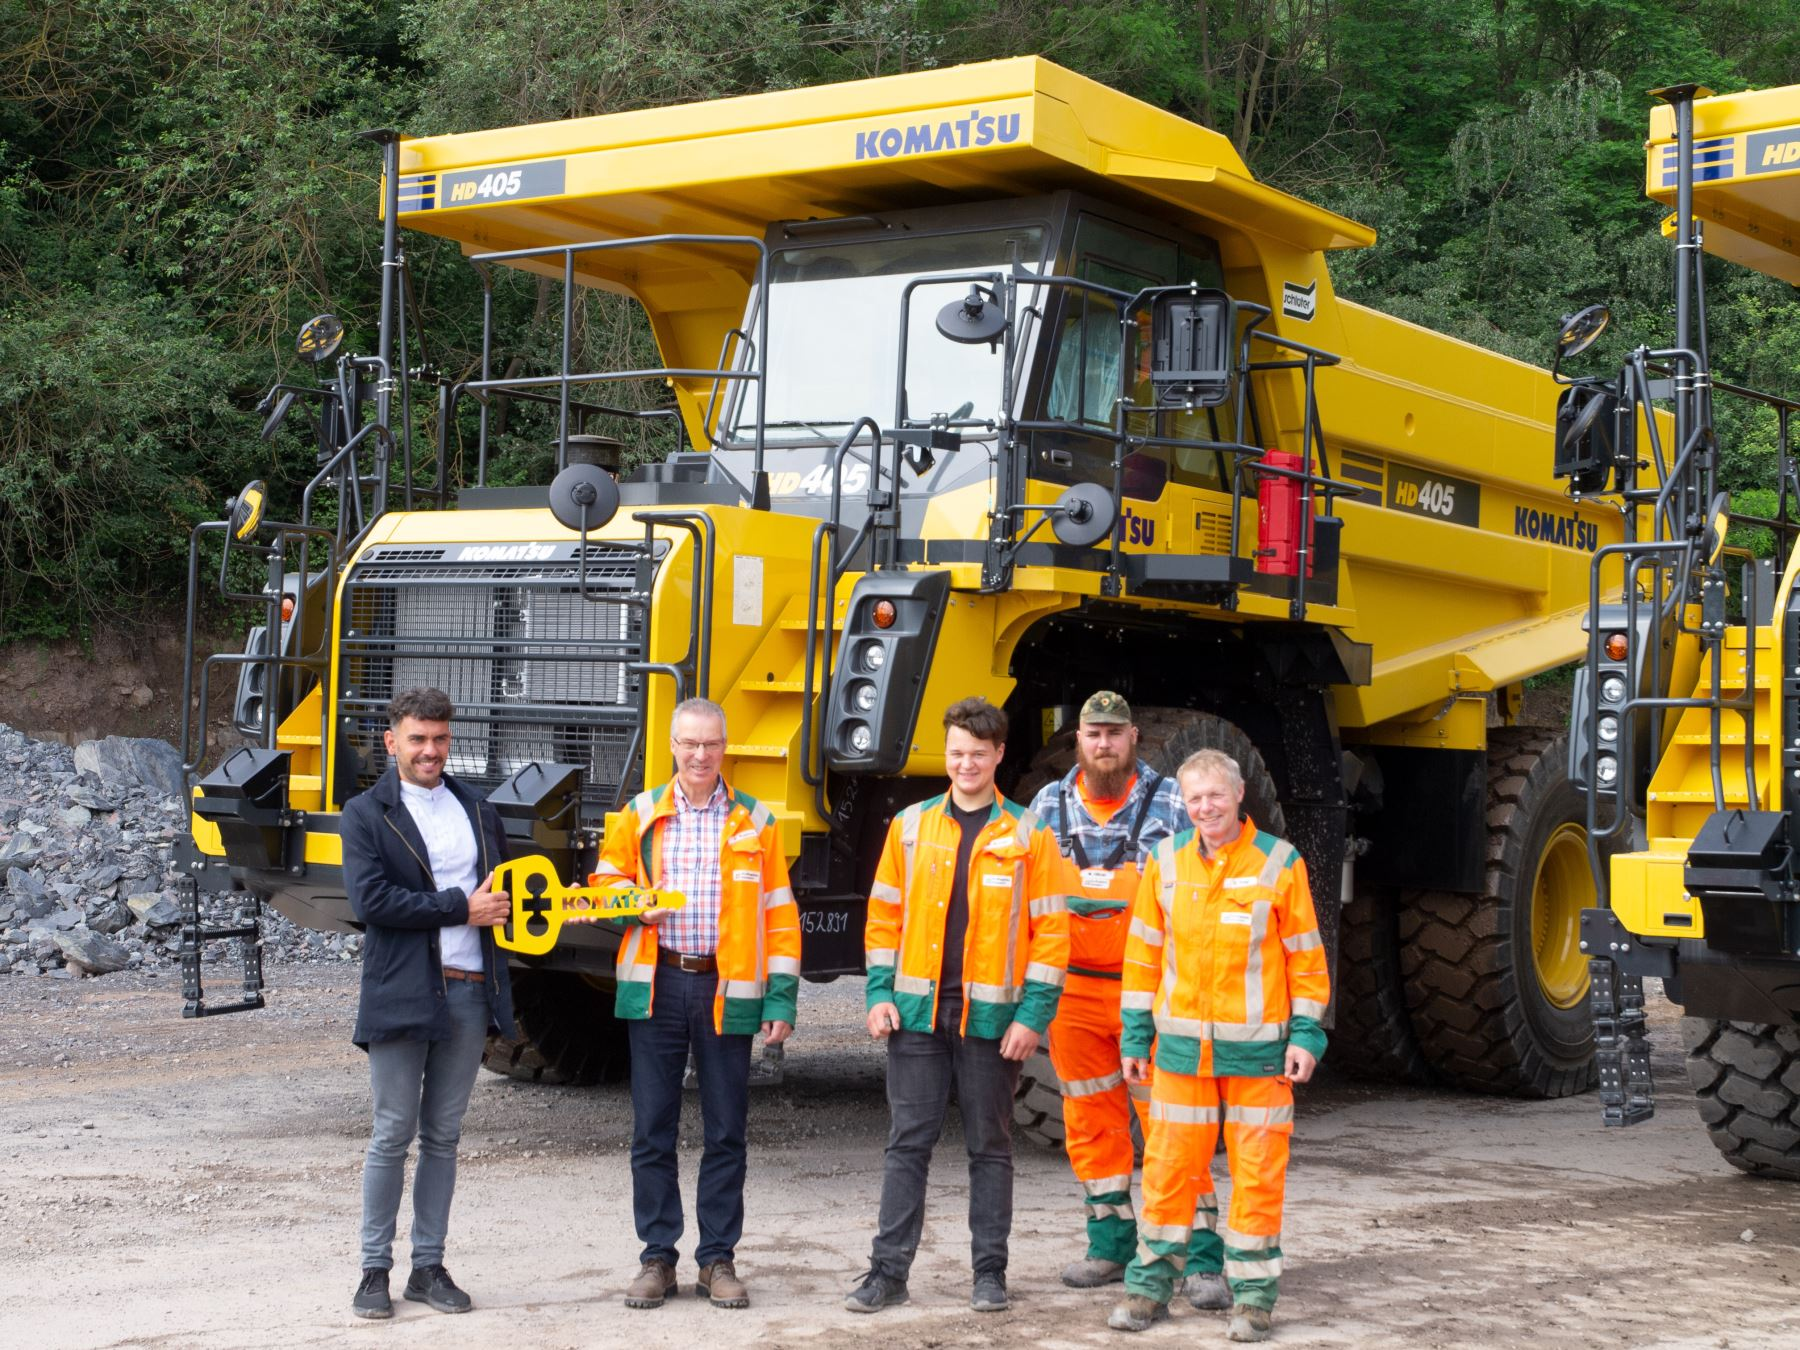 Schlüter supplies first komatsu power packs for Großtagebau Kamsdorf GmbH - 0